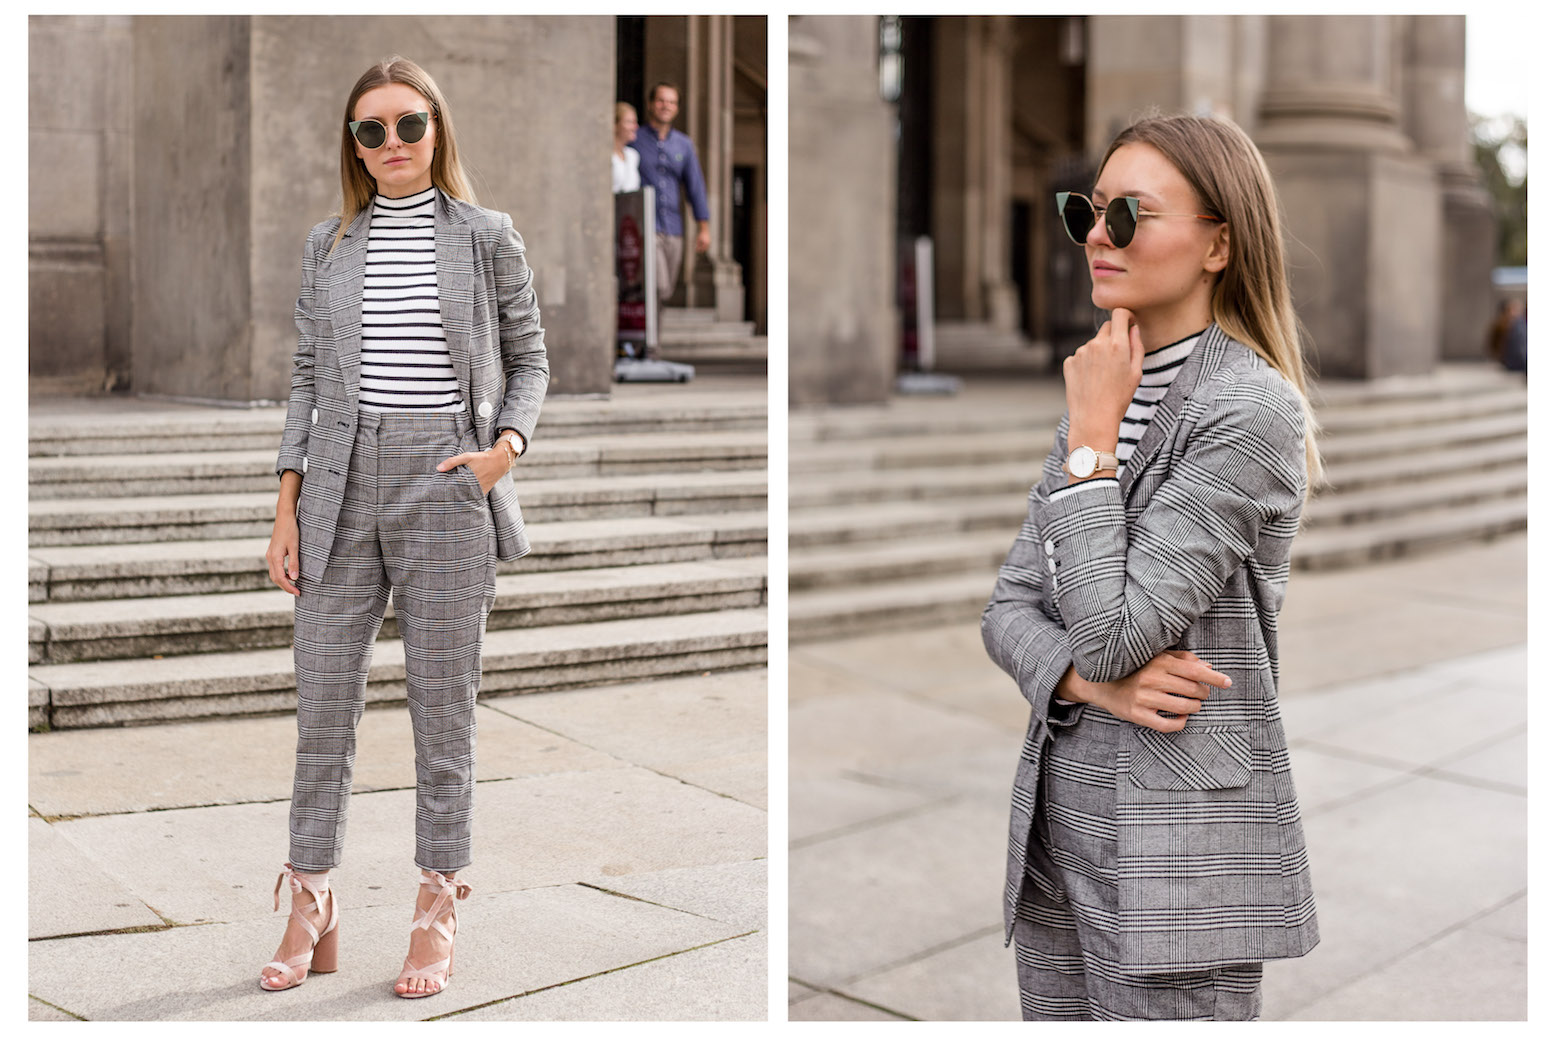 PLAID SUIT & VELVET SANDALS